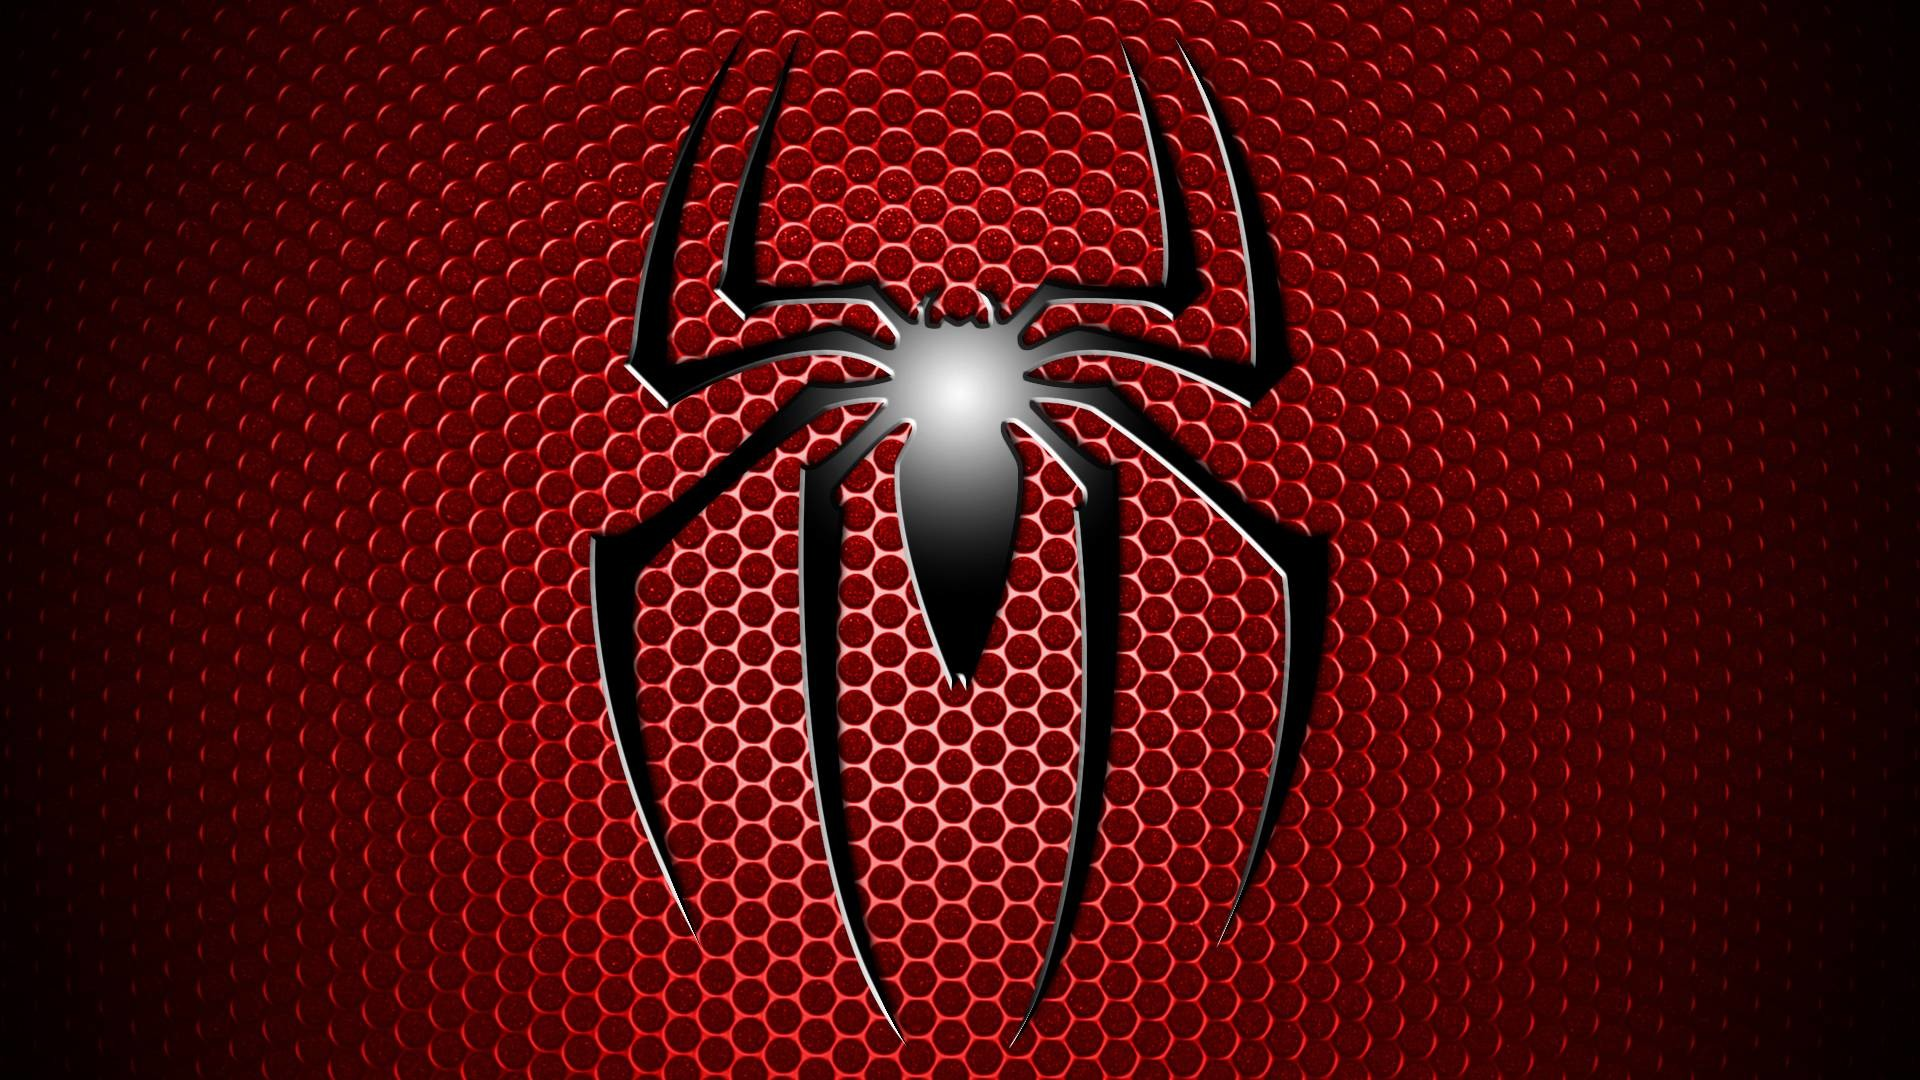 1920x1080 Wallpapers For Spiderman Logo Wallpaper